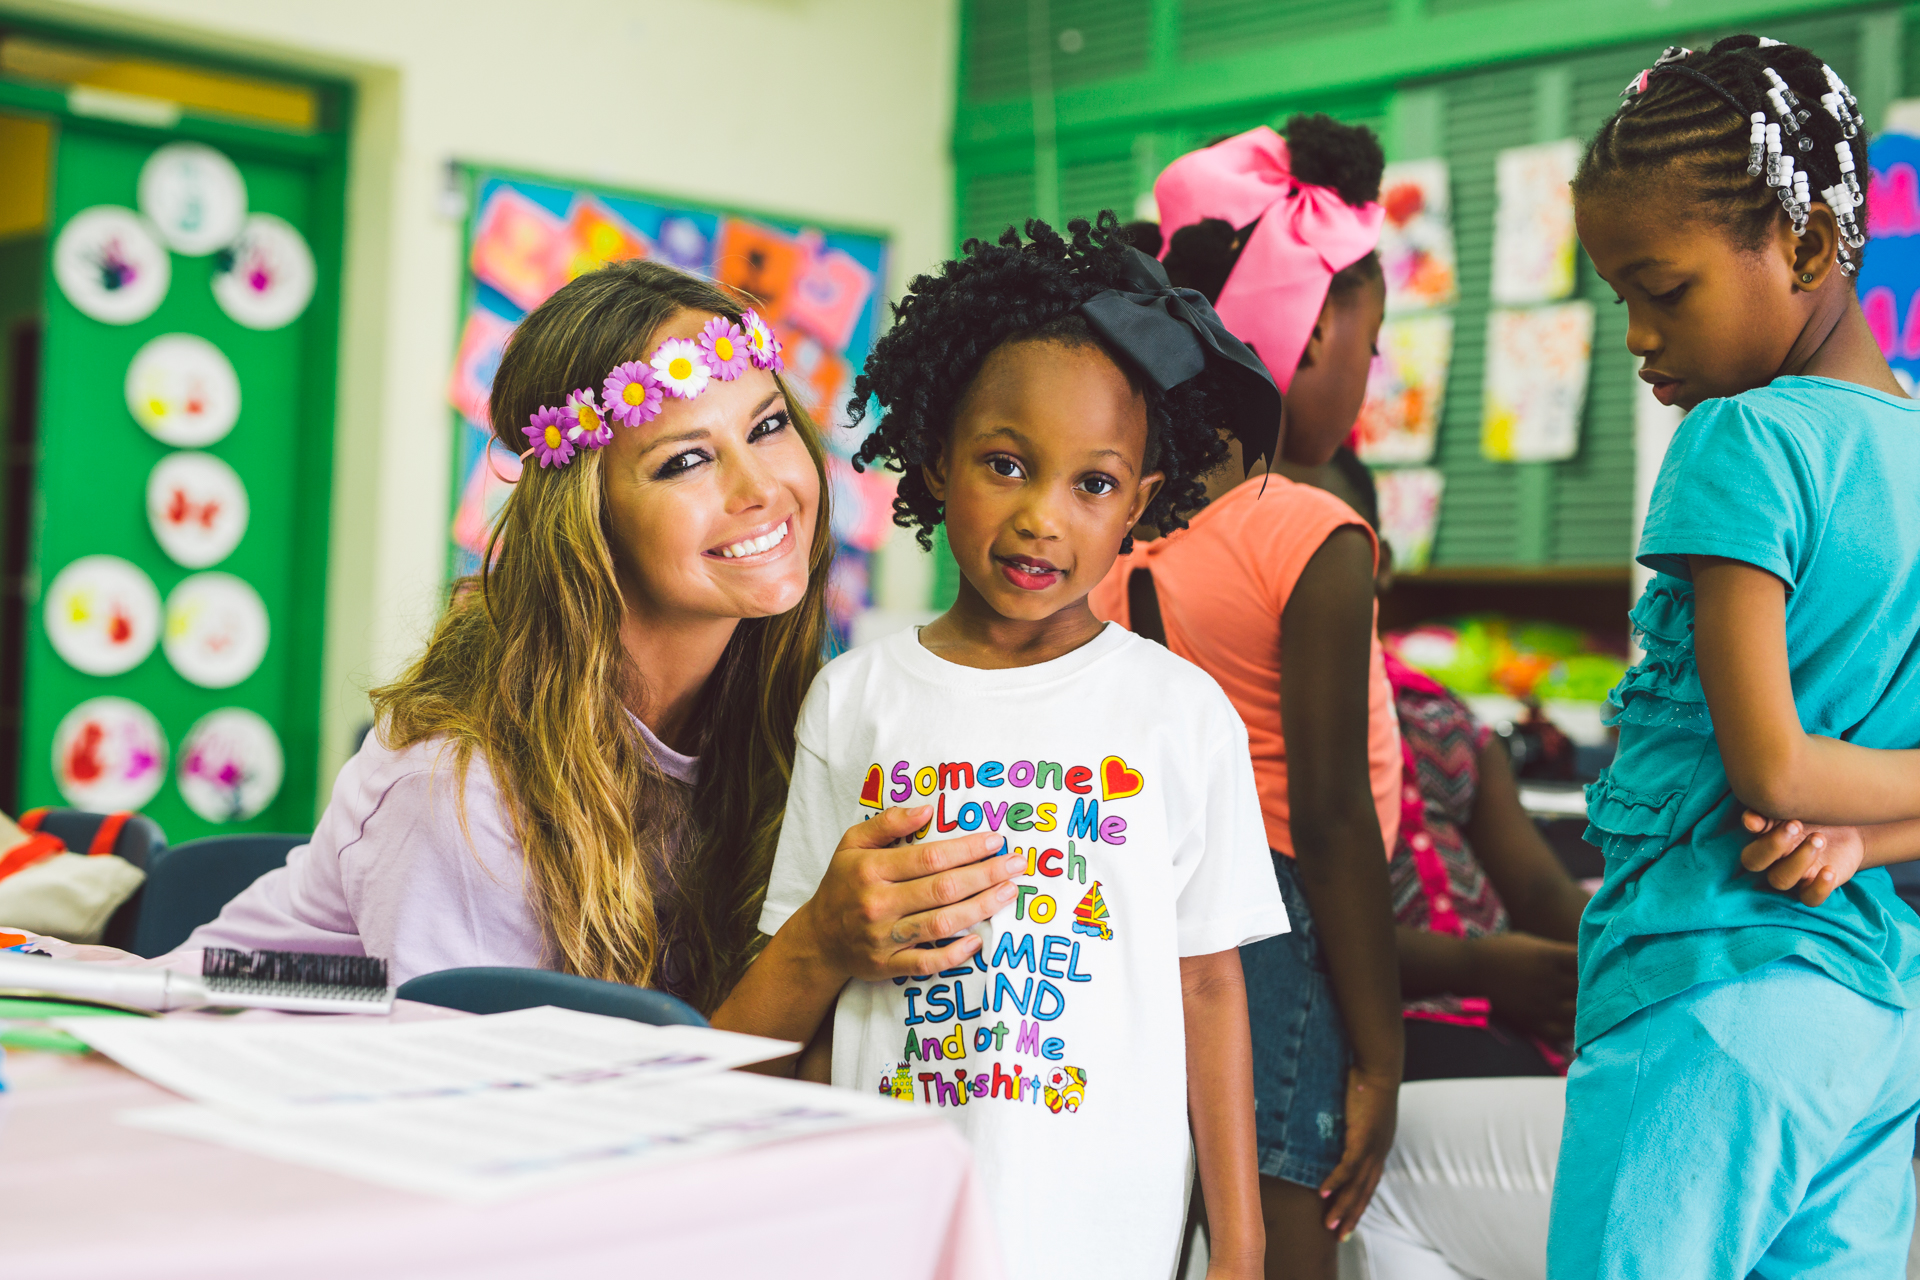 pageant of hope bahamas 2016-103.jpg